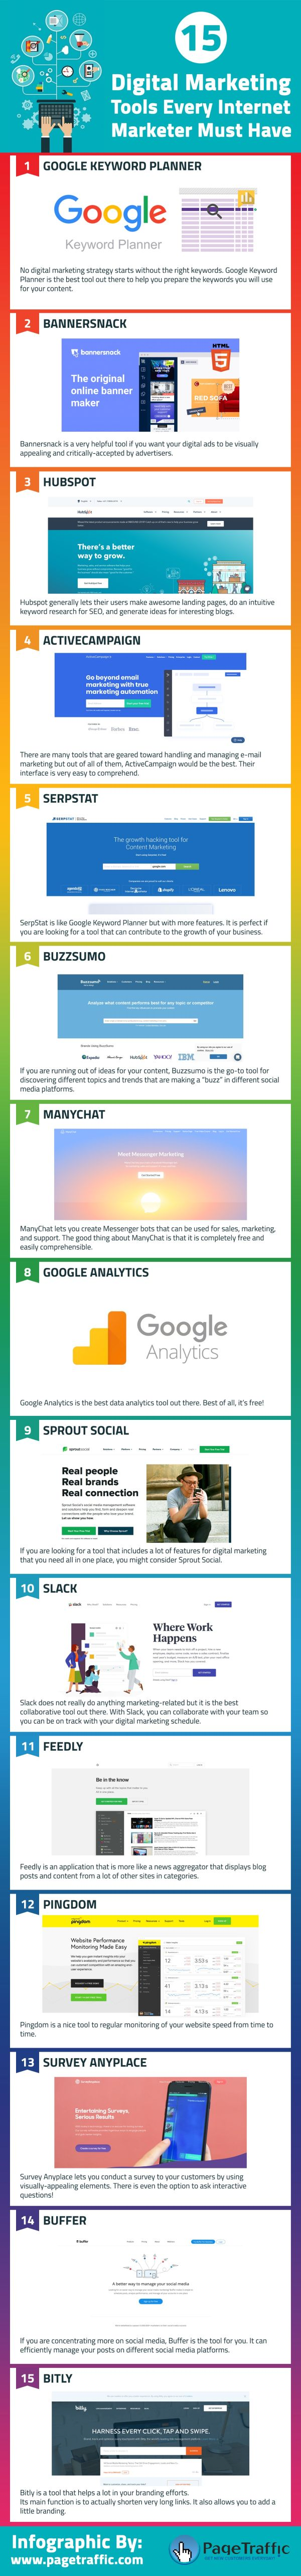 Infographic: Digital Marketing Tools